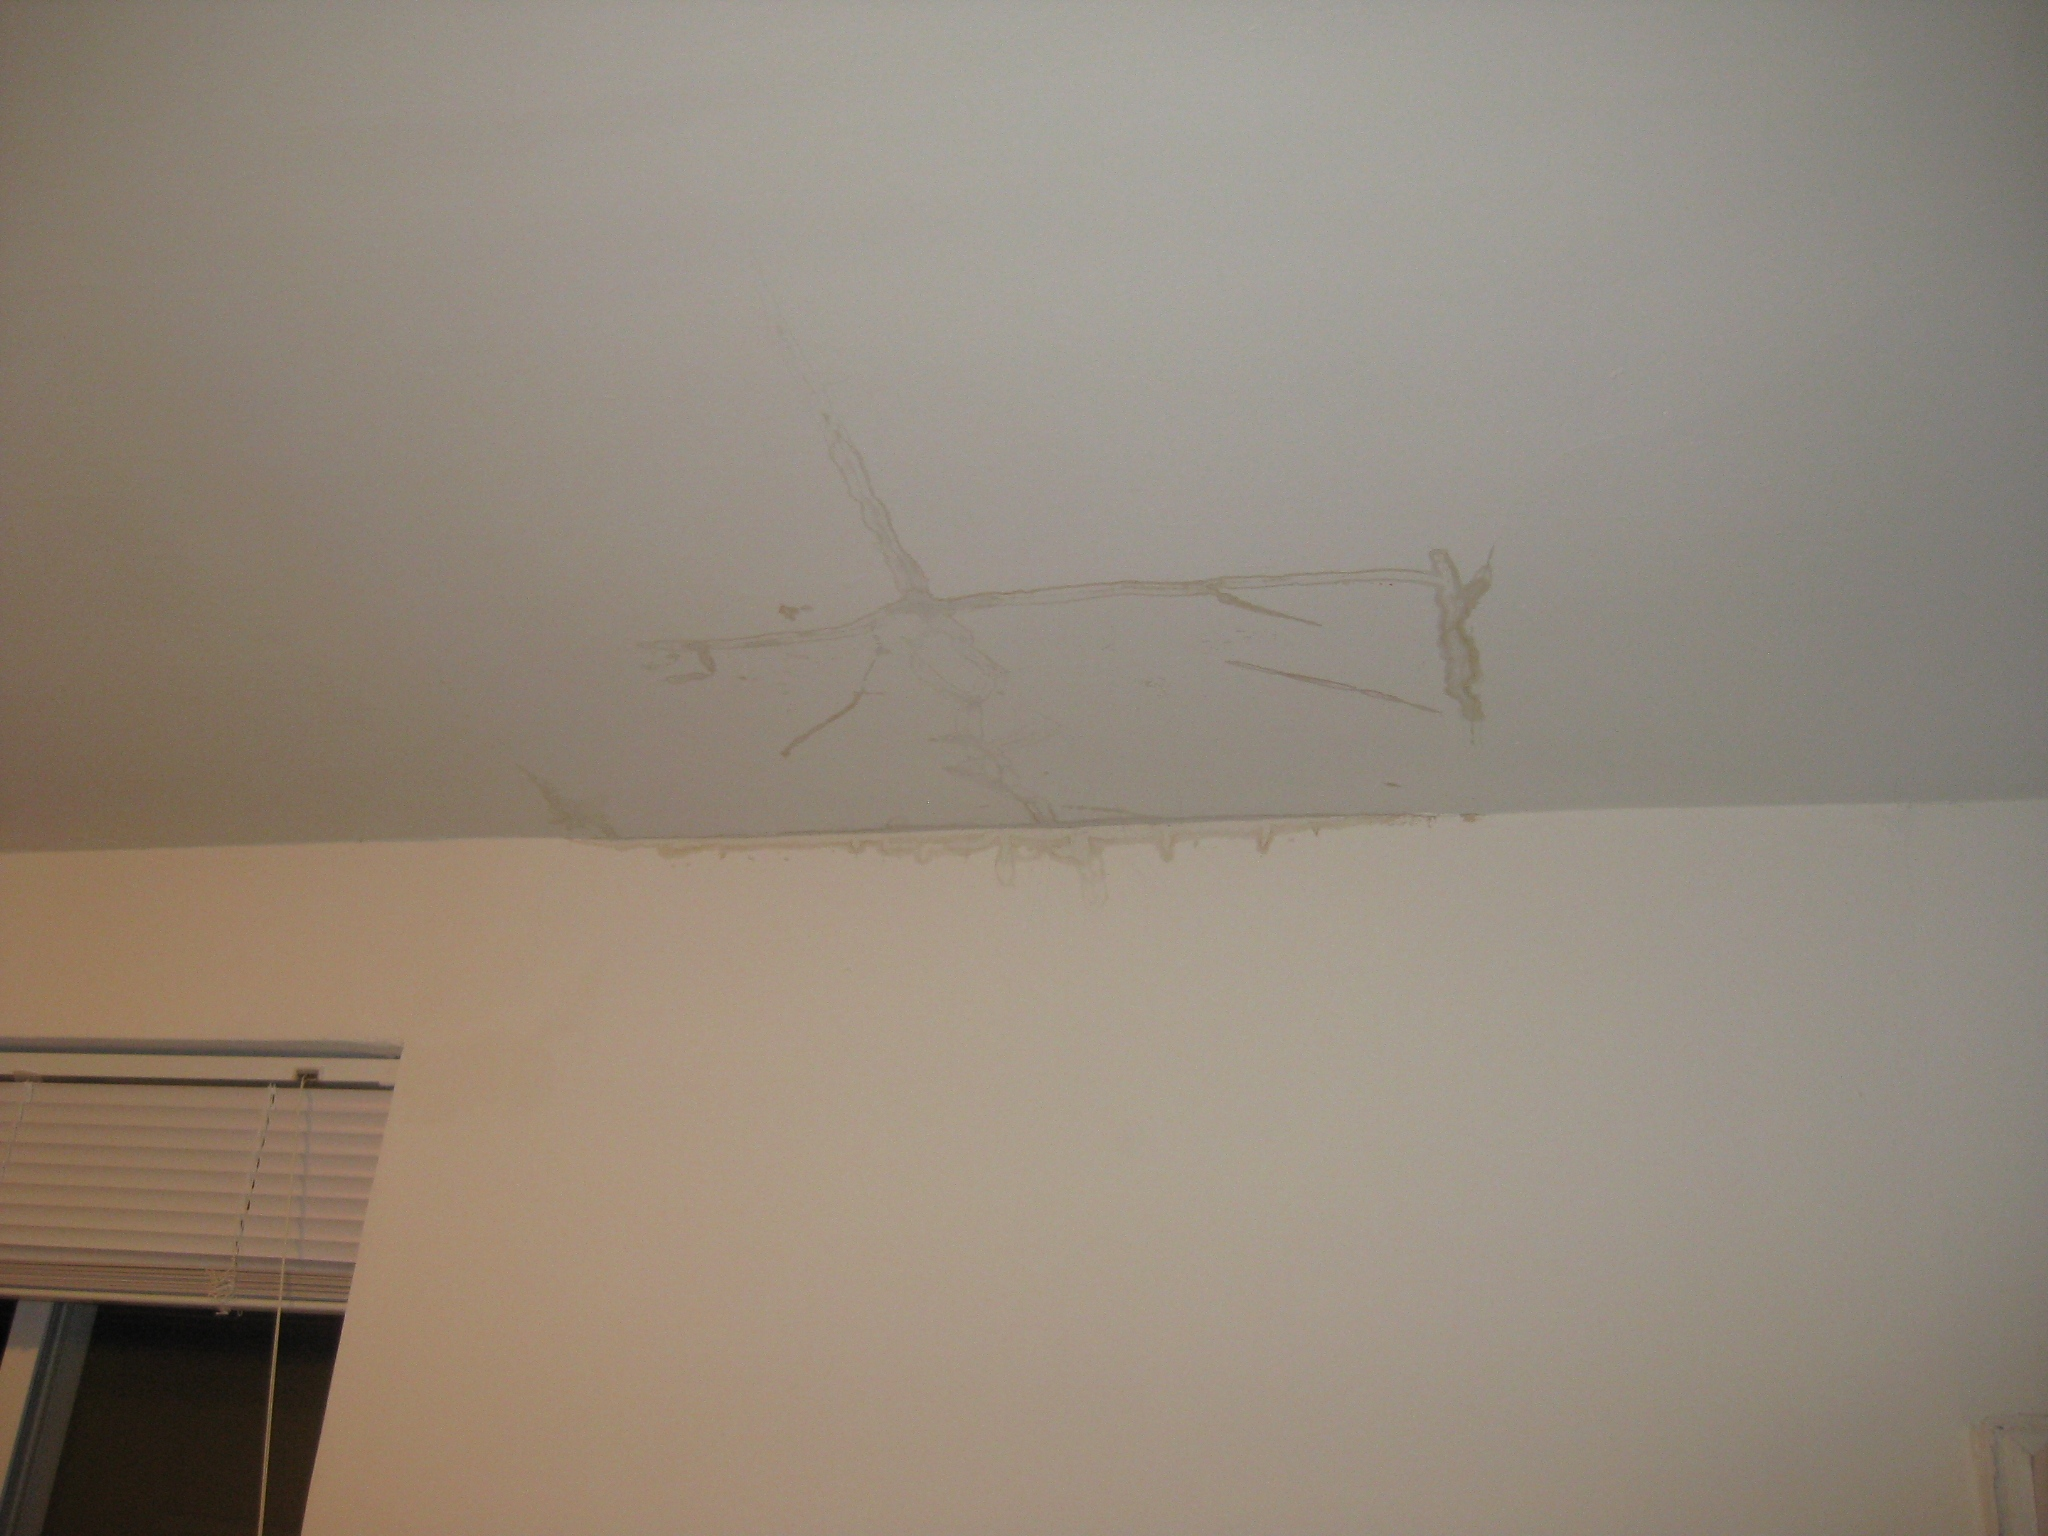 How To Fix A Leaking Ceiling In An Apartment Pranksenders